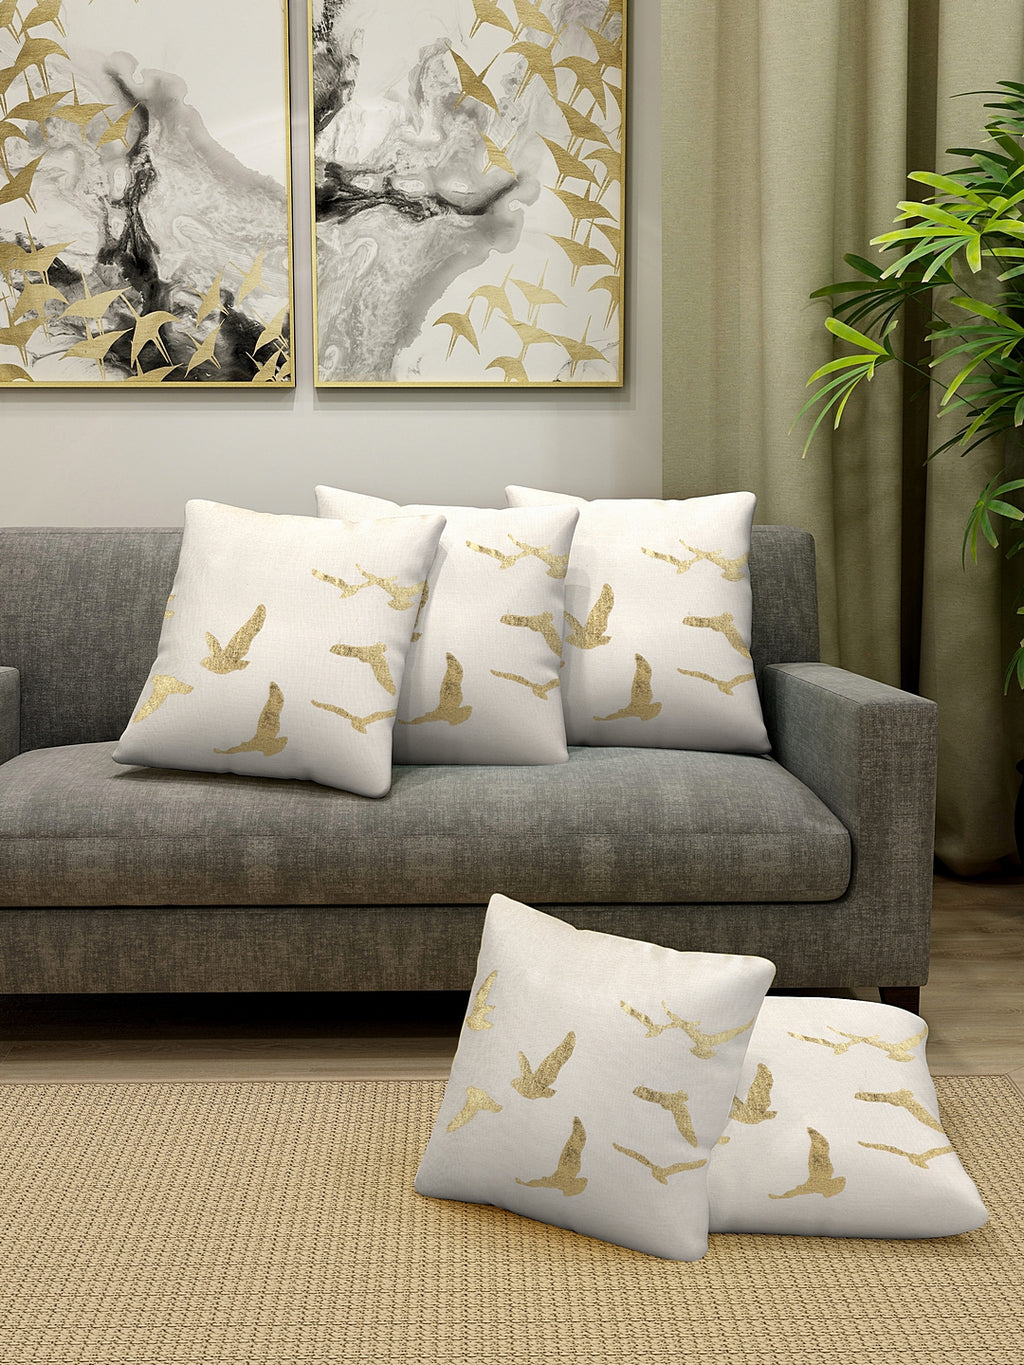 Detec™ Hosta Beige Foil Printed 16 x 16 inches Cushion Cover (Set of 5 )